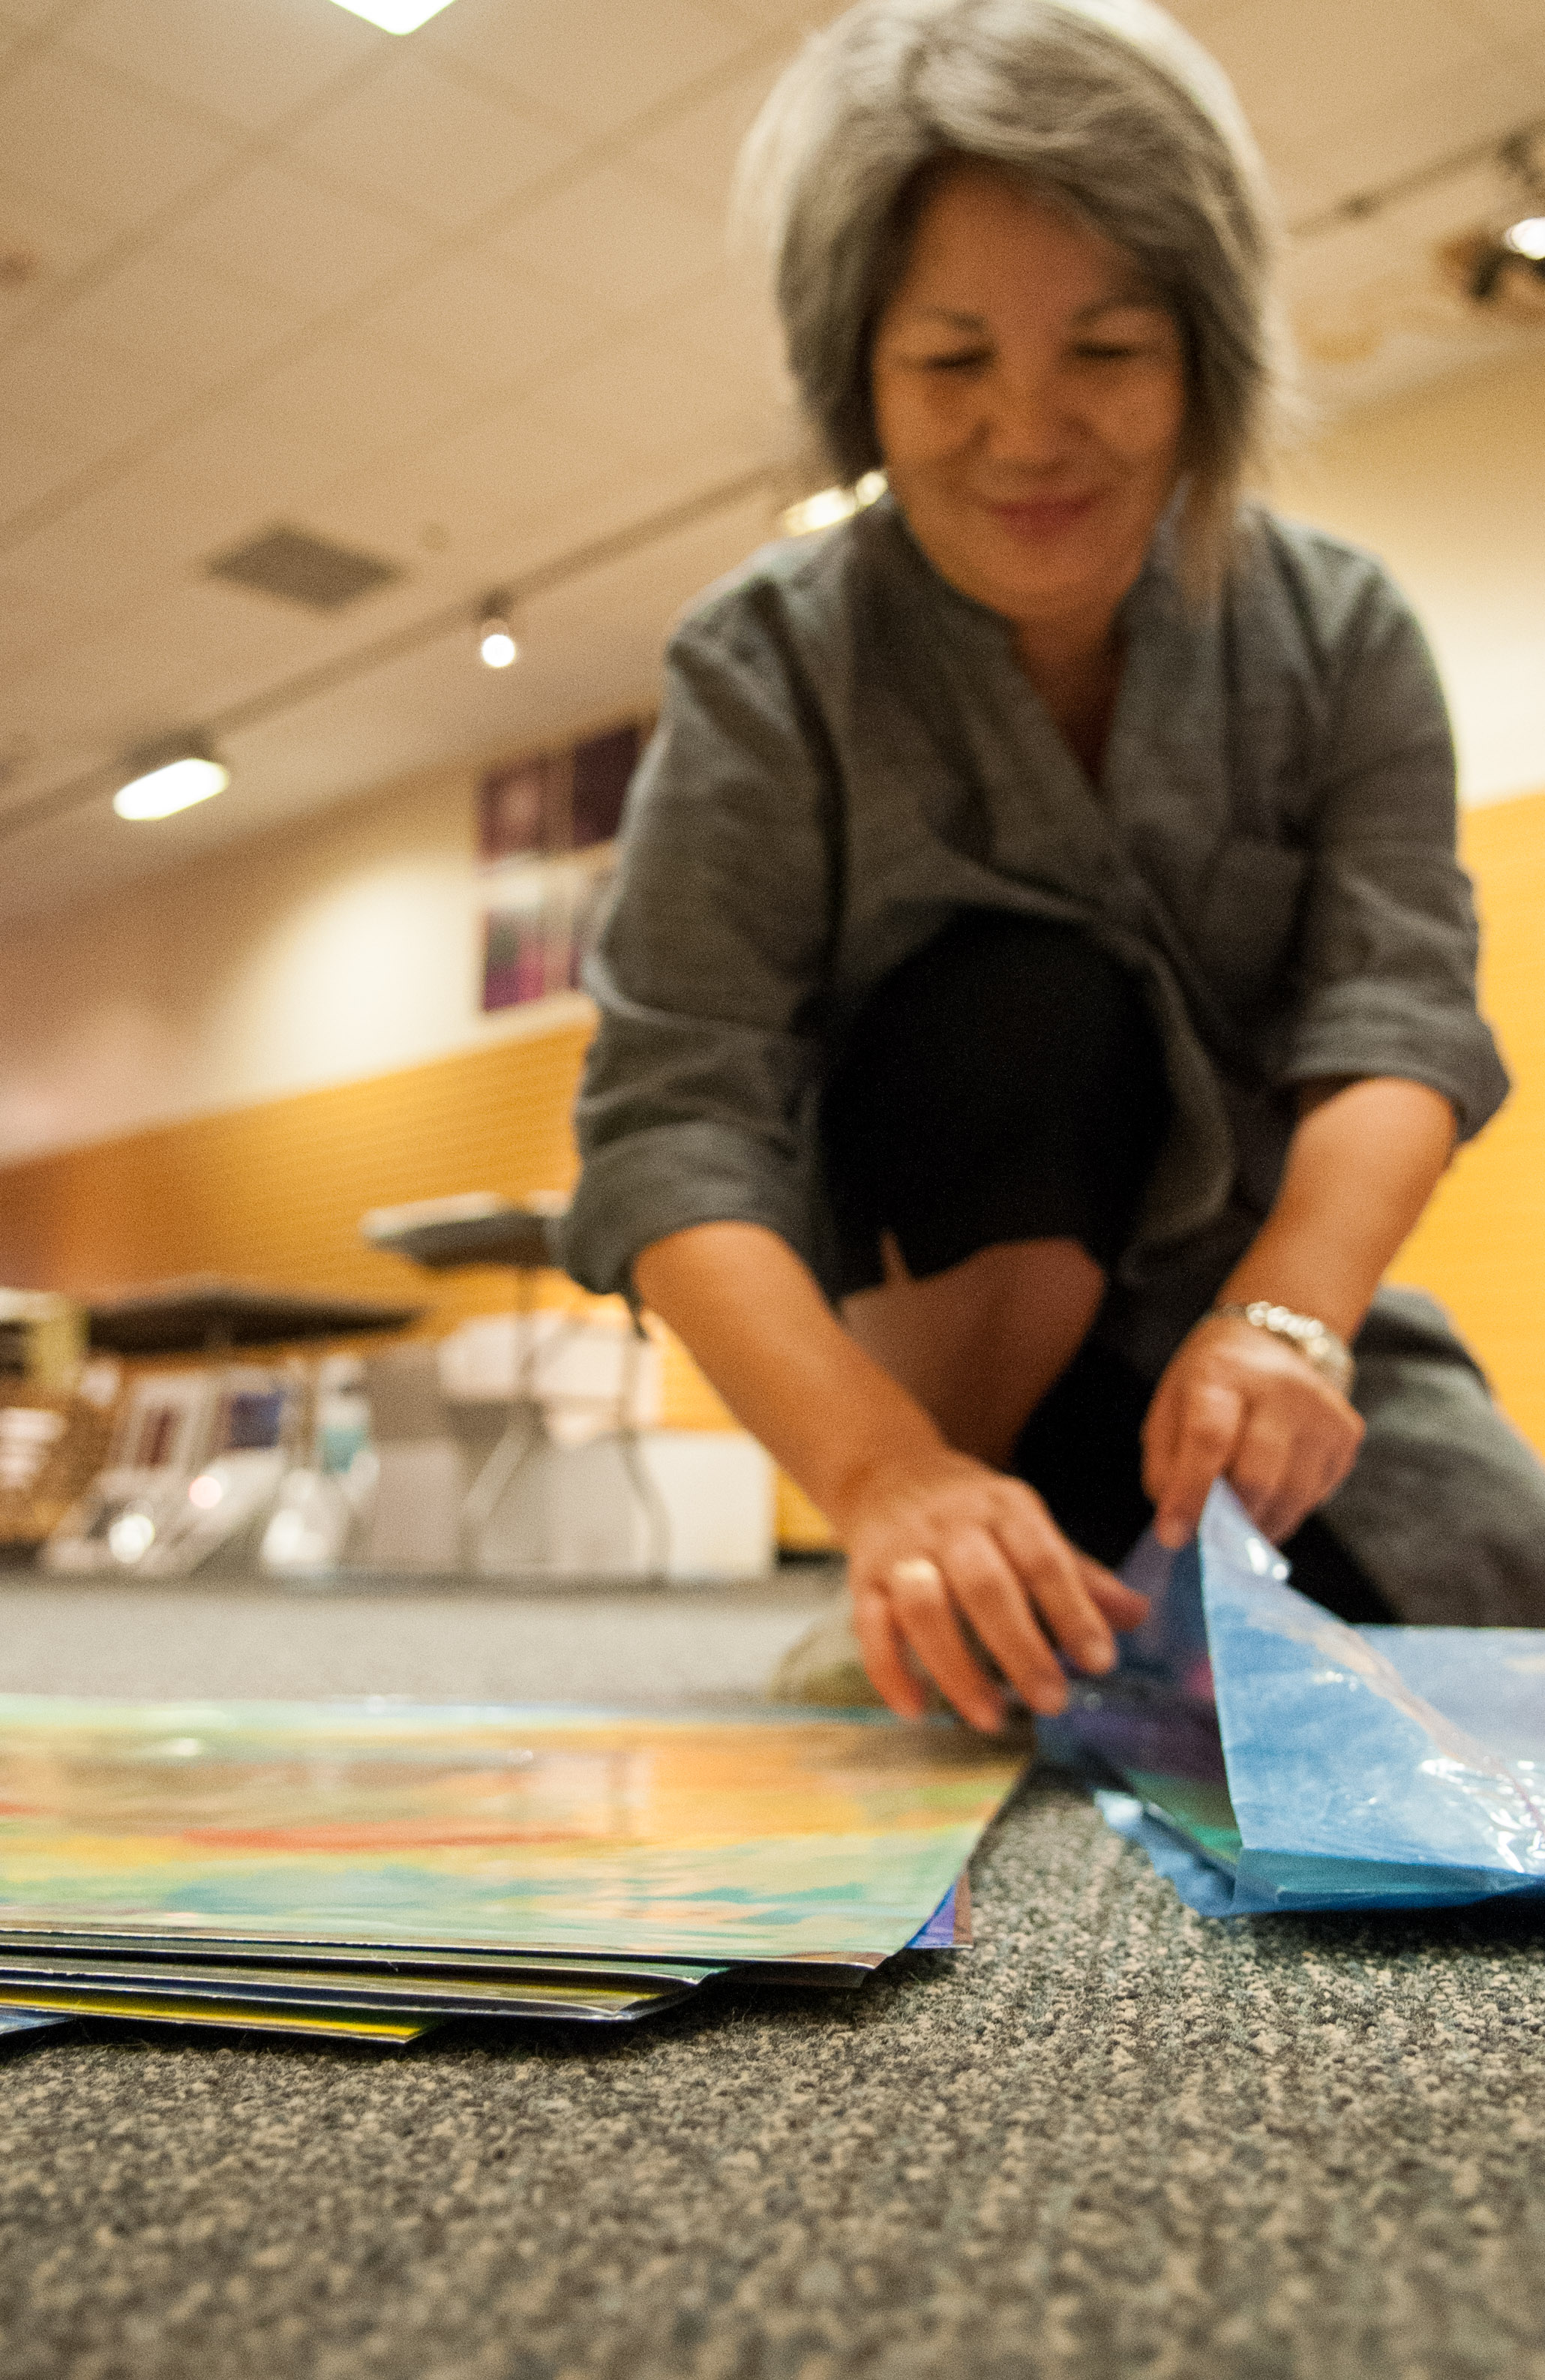 An artist puts her art pieces in a bag to be taken to the Austin Convention Center for the show. Photo by Skylar Isdale